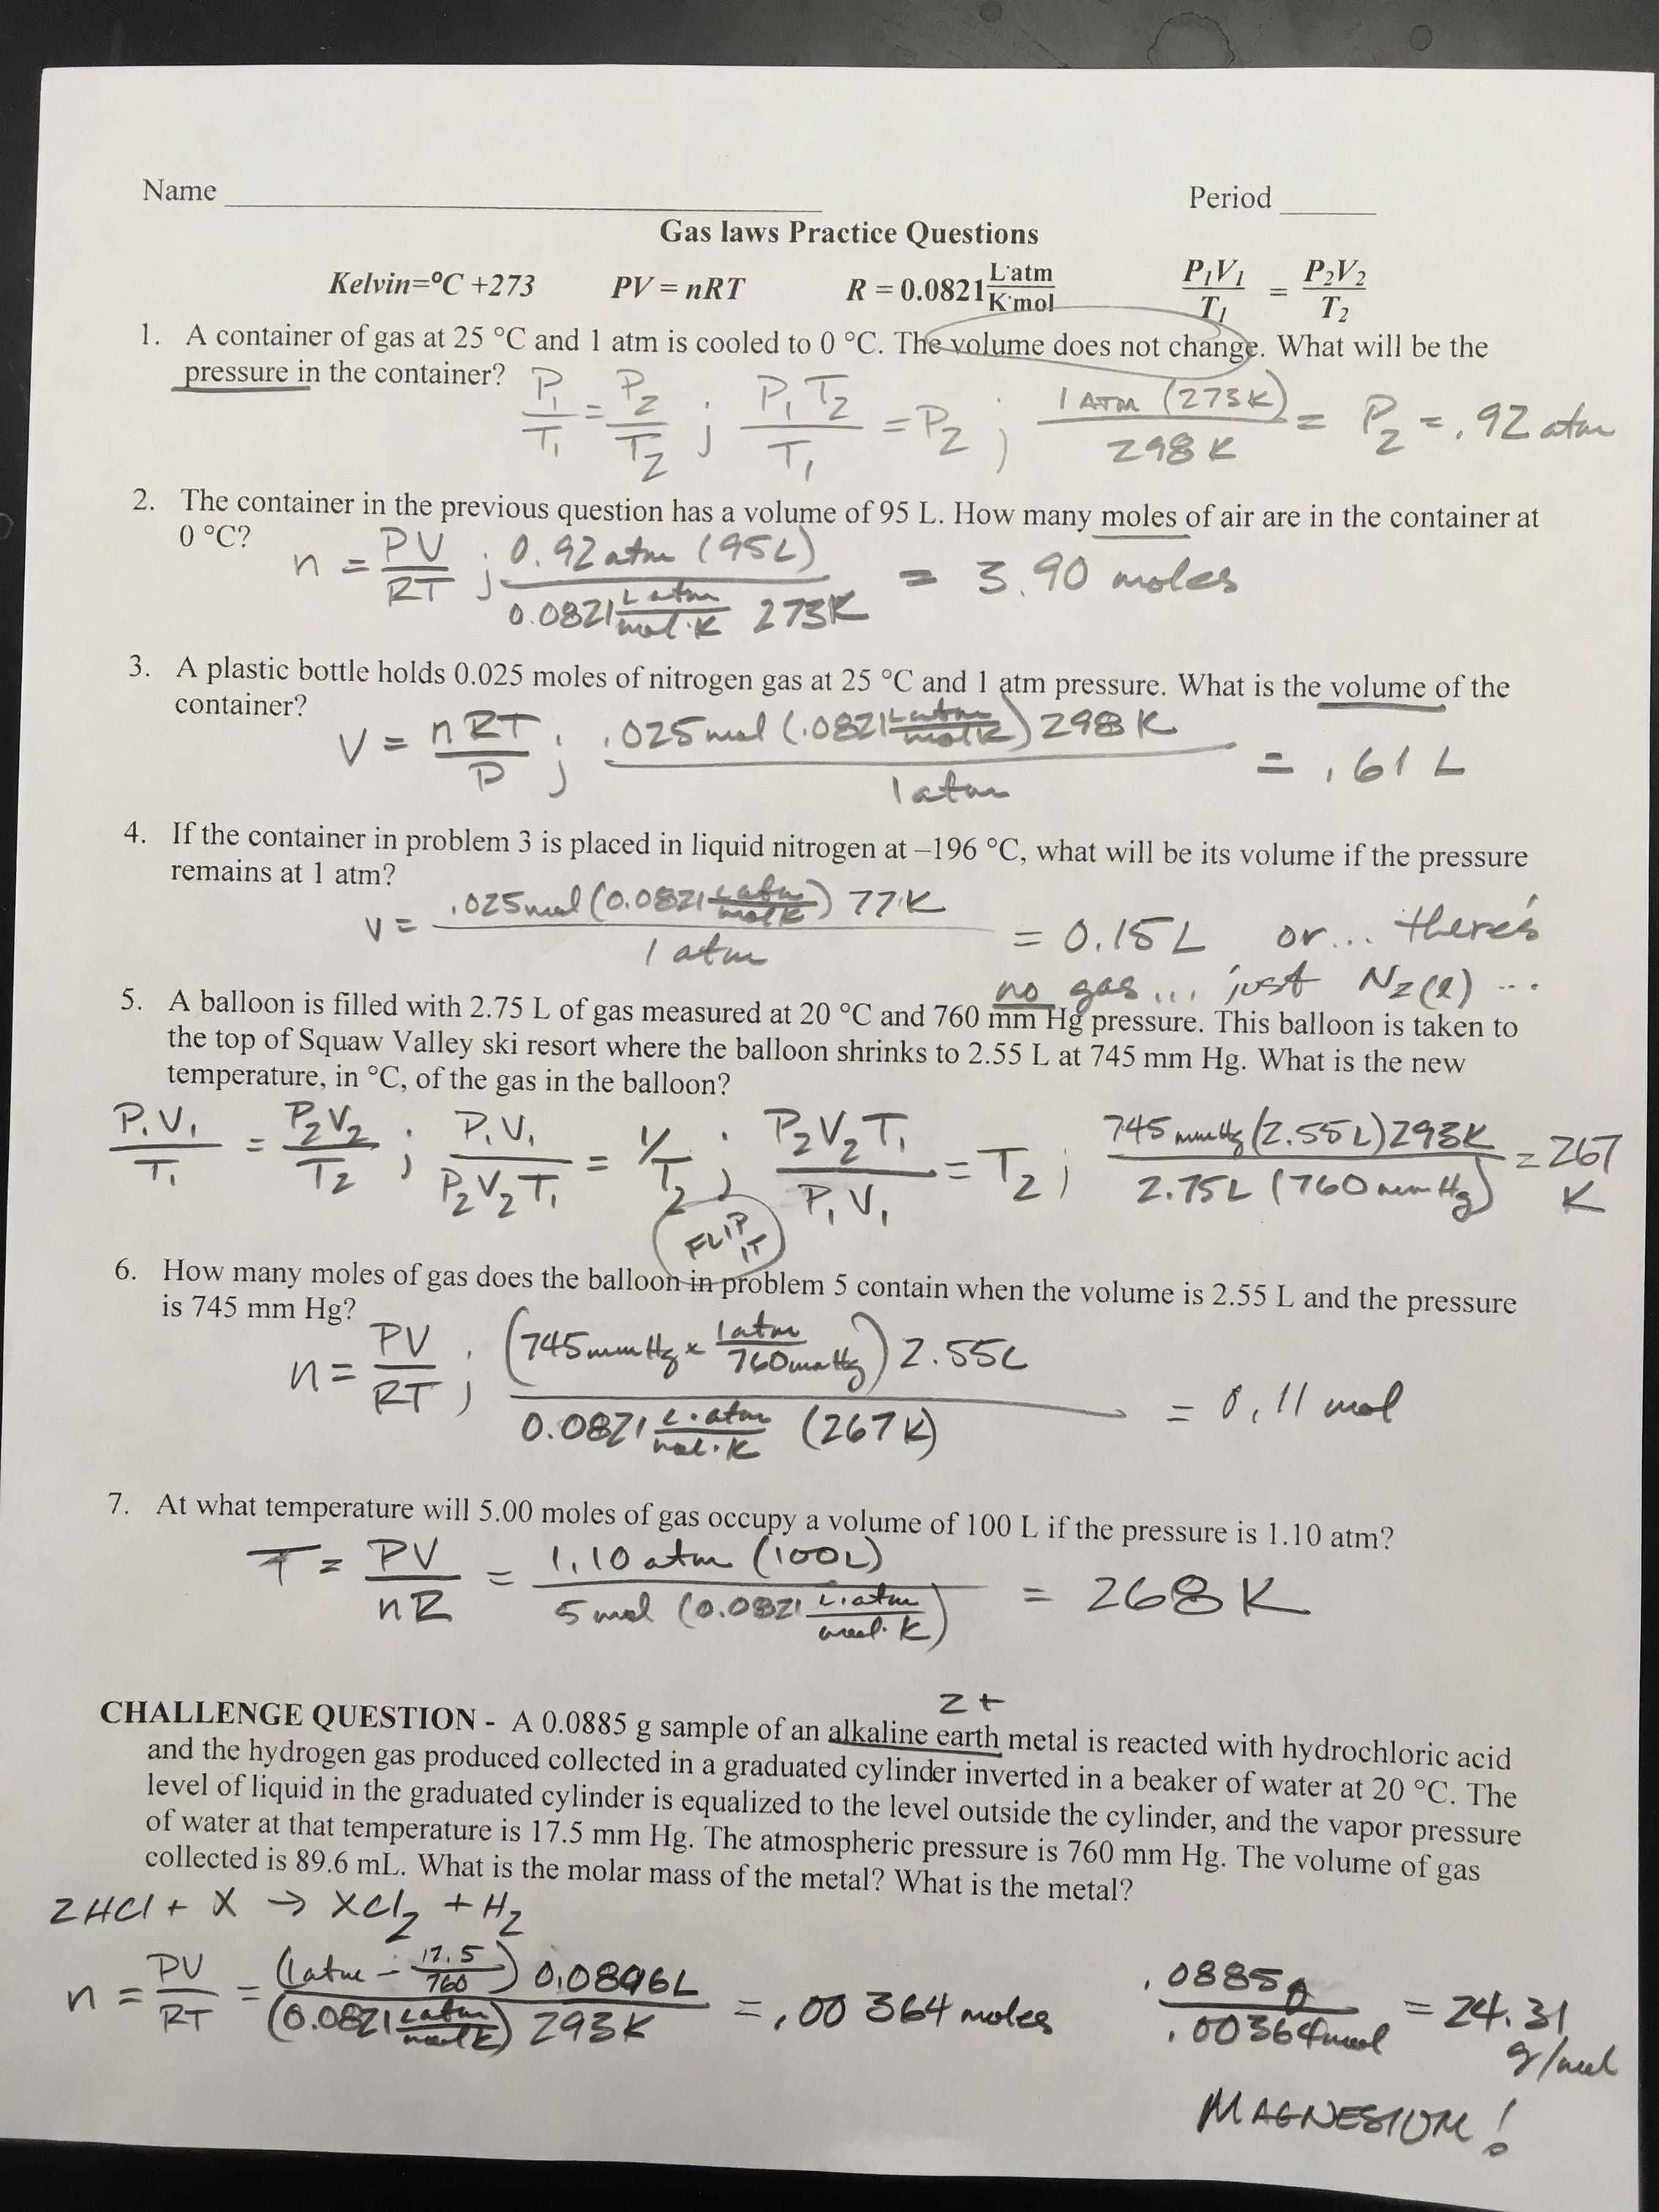 Ideal Gas Law Problems Worksheet Answers With Work My